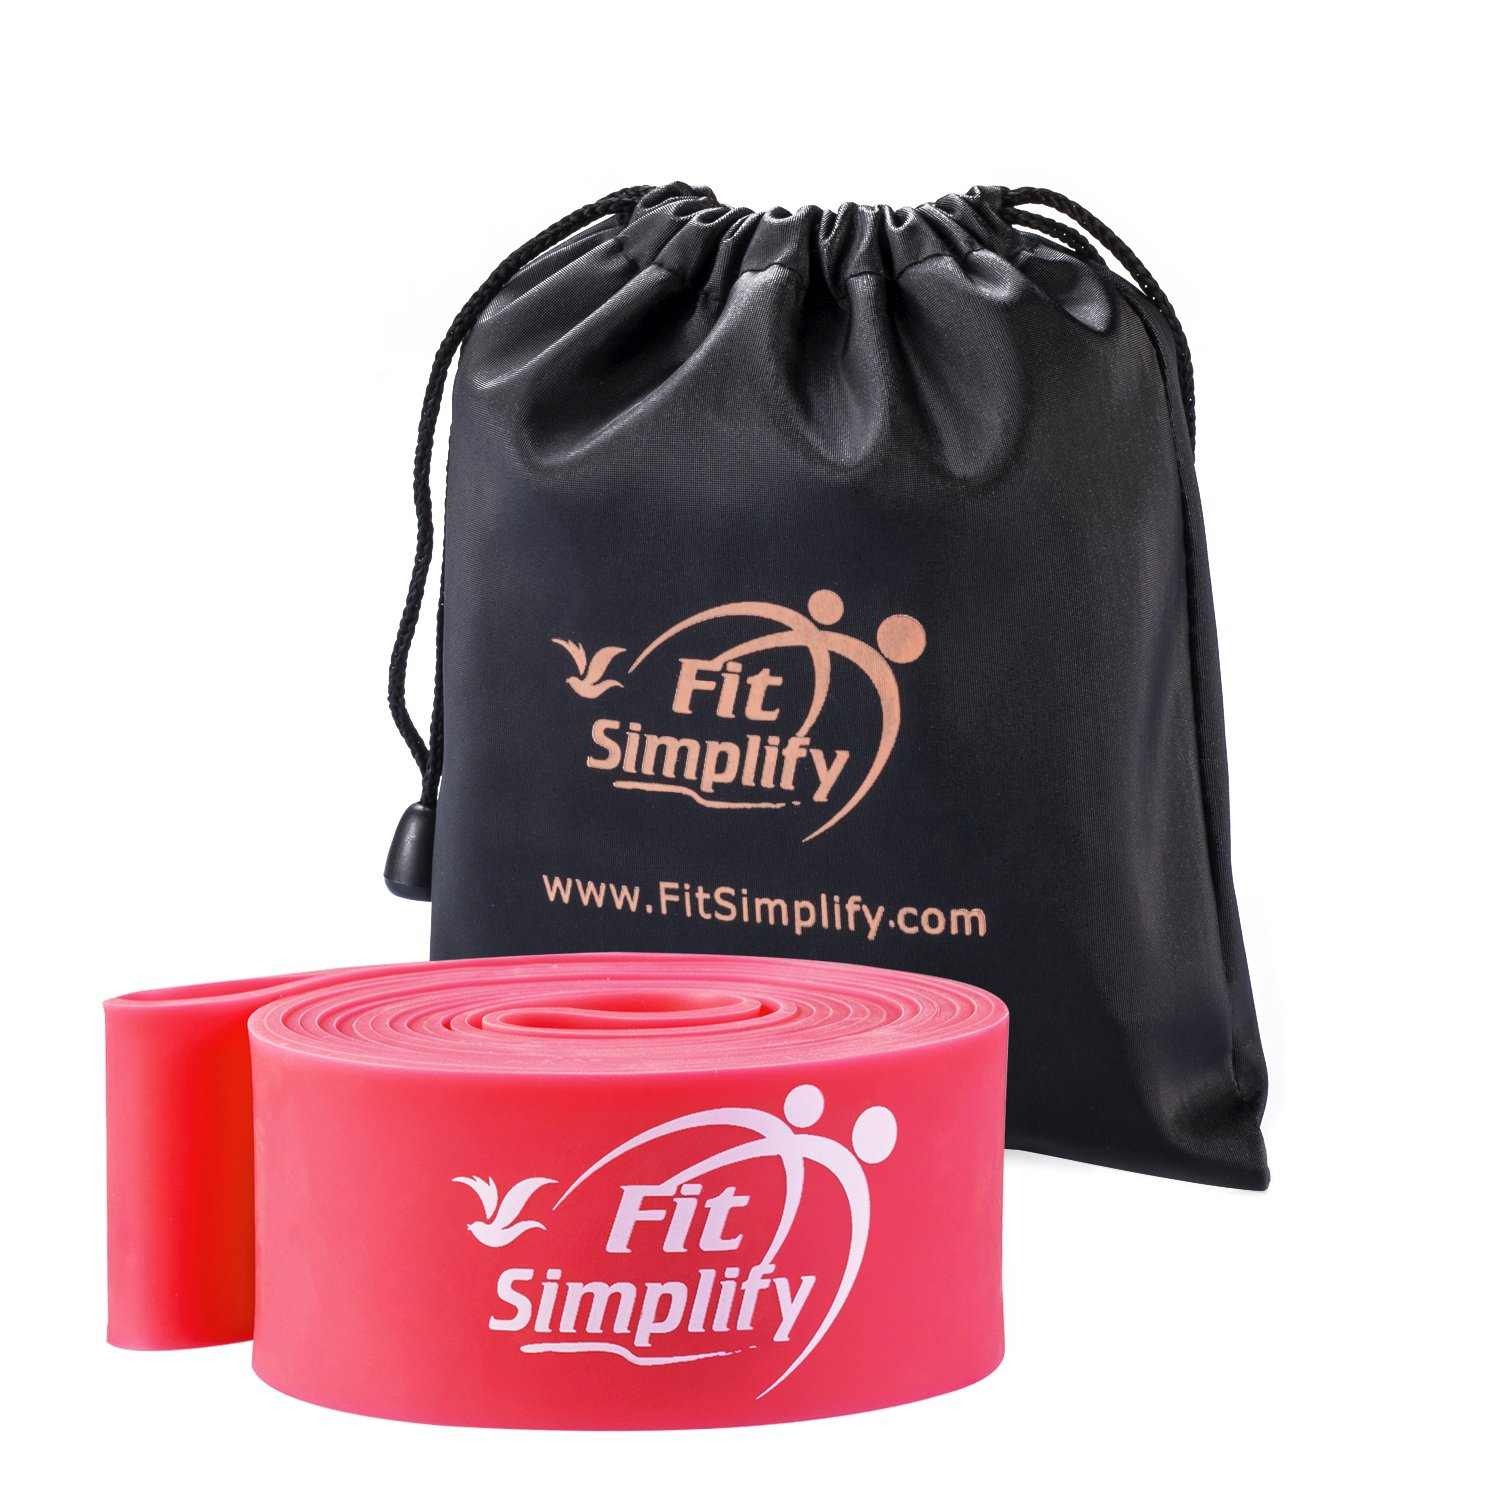 Fit Simplify Ballet Stretch Bands - Dance Stretchers and Flexiblity Trainers - For Dancers, Skaters and Gymnasts - Instructional Booklet, Carry Bag, Stretching e-Guide and Online Videos by Fit Simplify